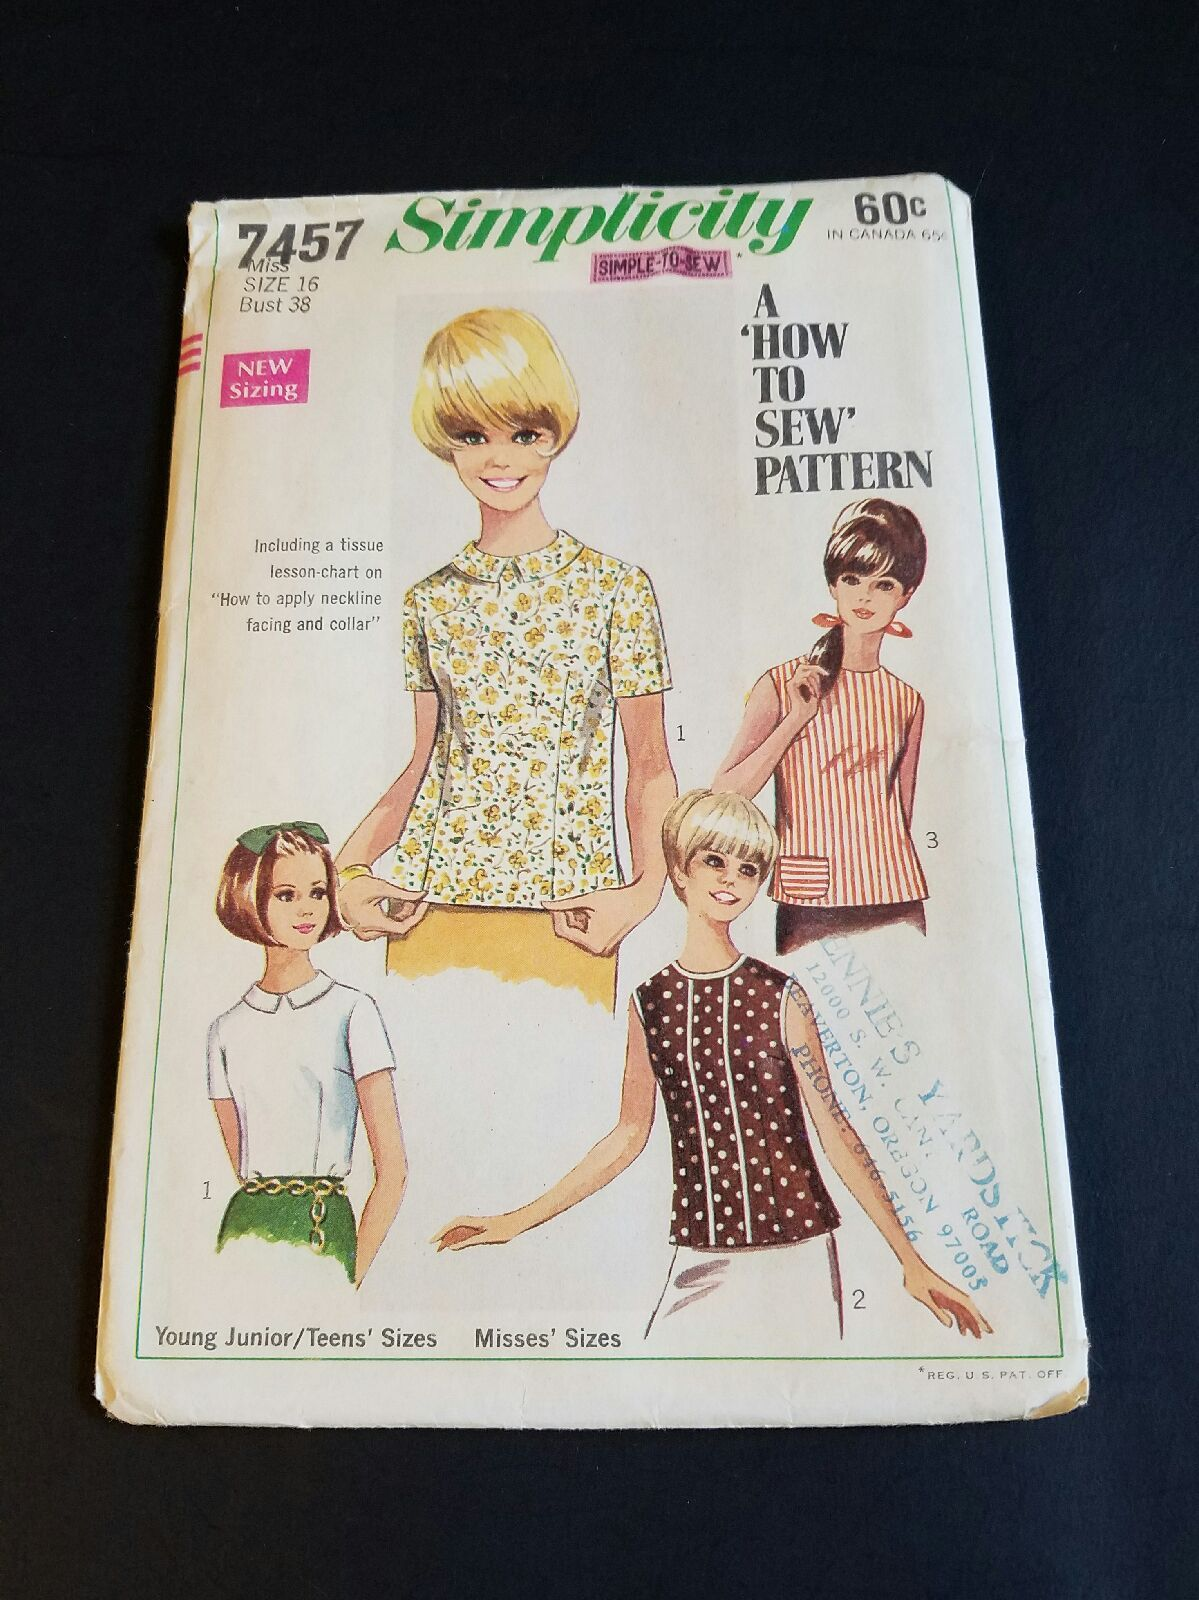 Vintage Simplicity 7457 Size 16 Women's Blouse Pattern How to Sew Bust 38. Pattern envelope has discolored some with age.  See photos for actual condition.  Suggested fabrics are cottons, pique, denim, linen, synthetics and more.   https://nemb.ly/p/ryQK3dtLl Happily published via Nembol